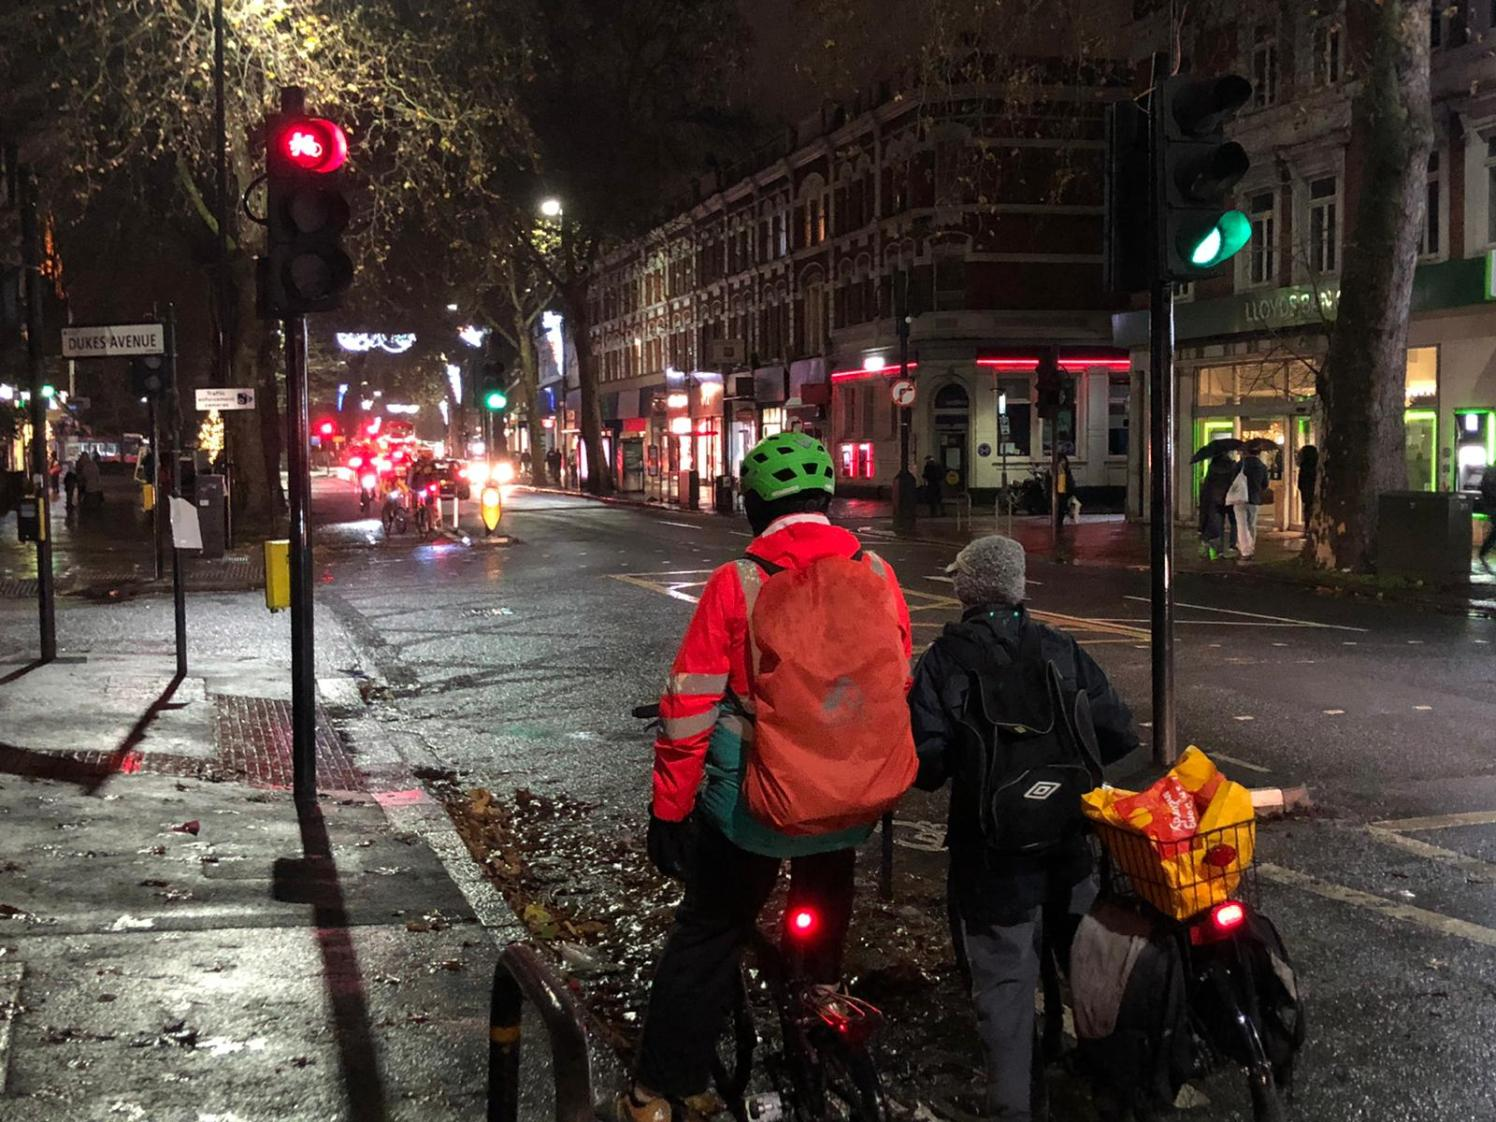 Cyclists waiting at the light